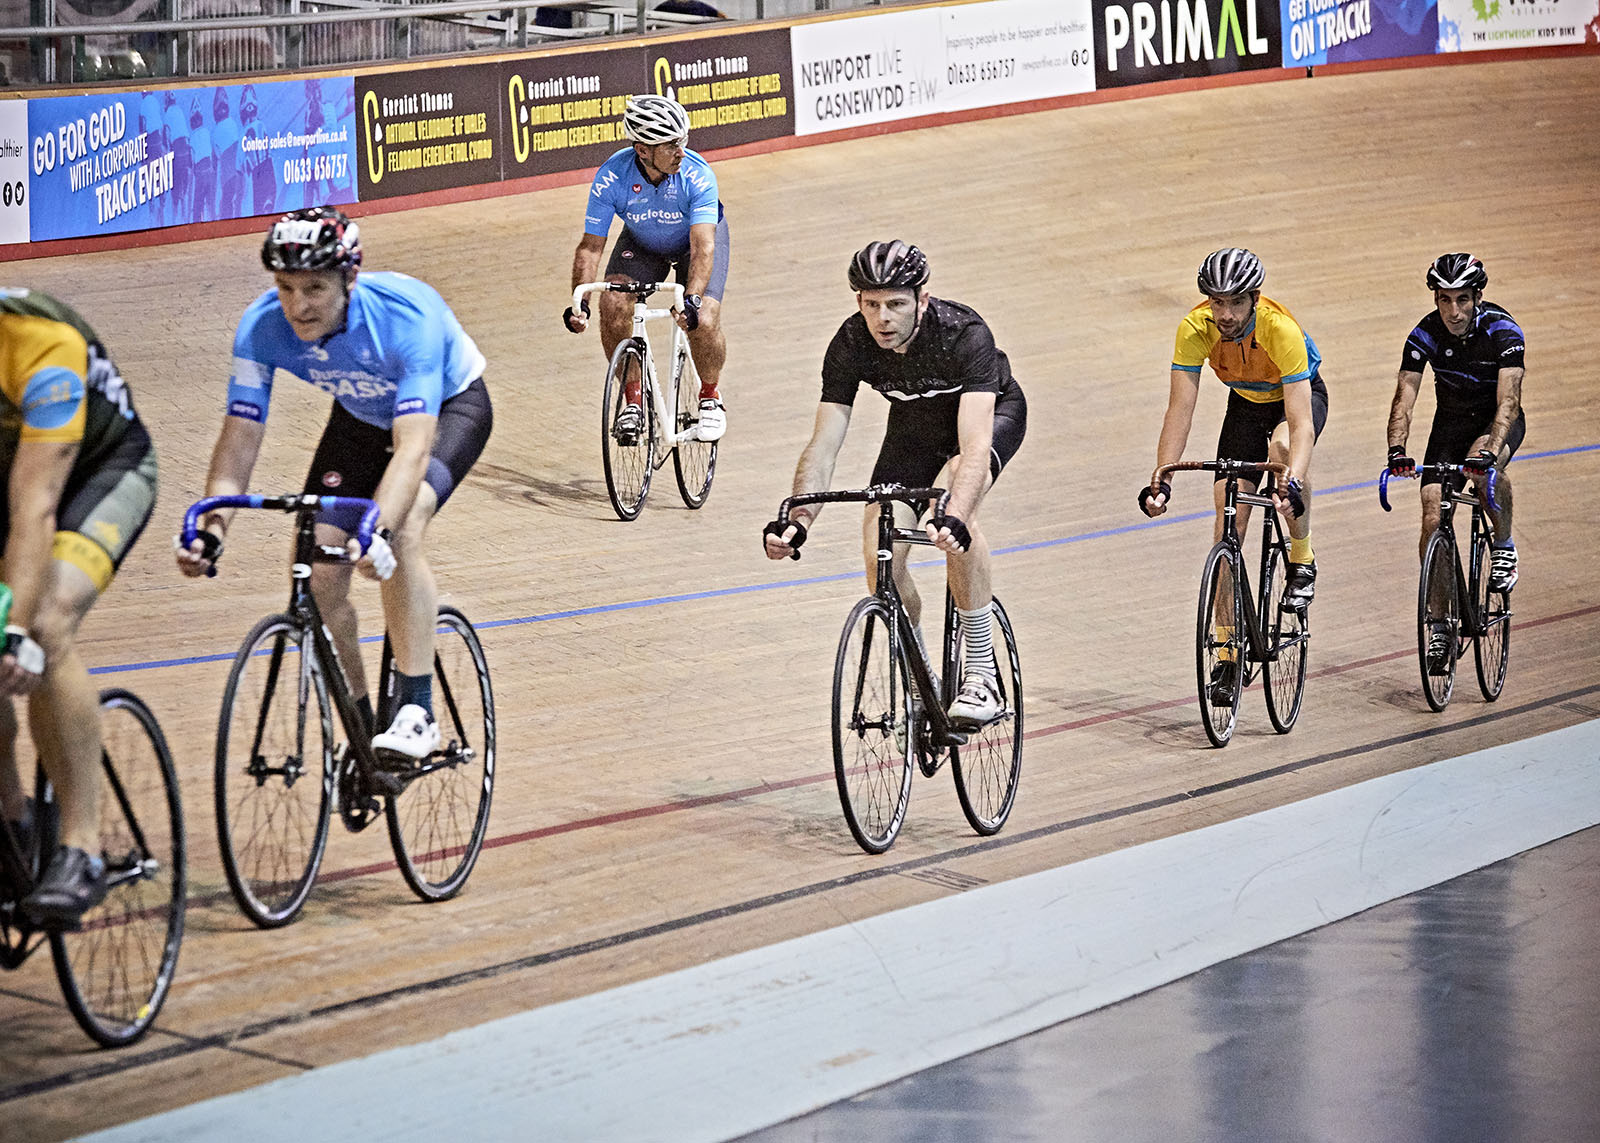 group of adult riders on a cycling track